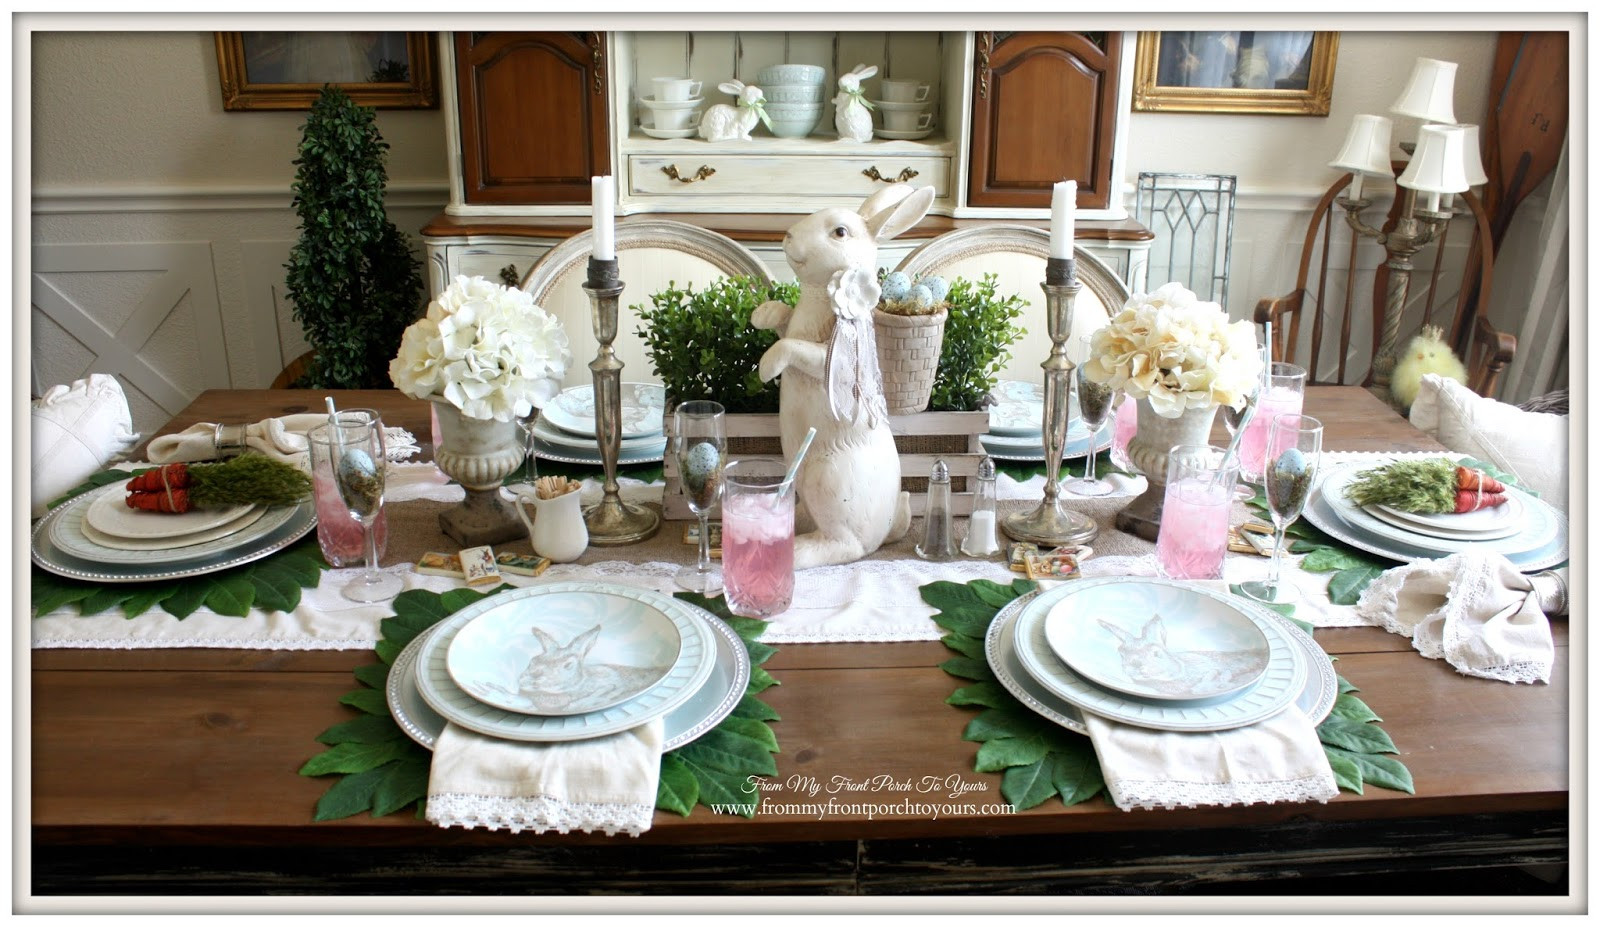 Easter Dinner Table Settings  From My Front Porch To Yours French Farmhouse Easter